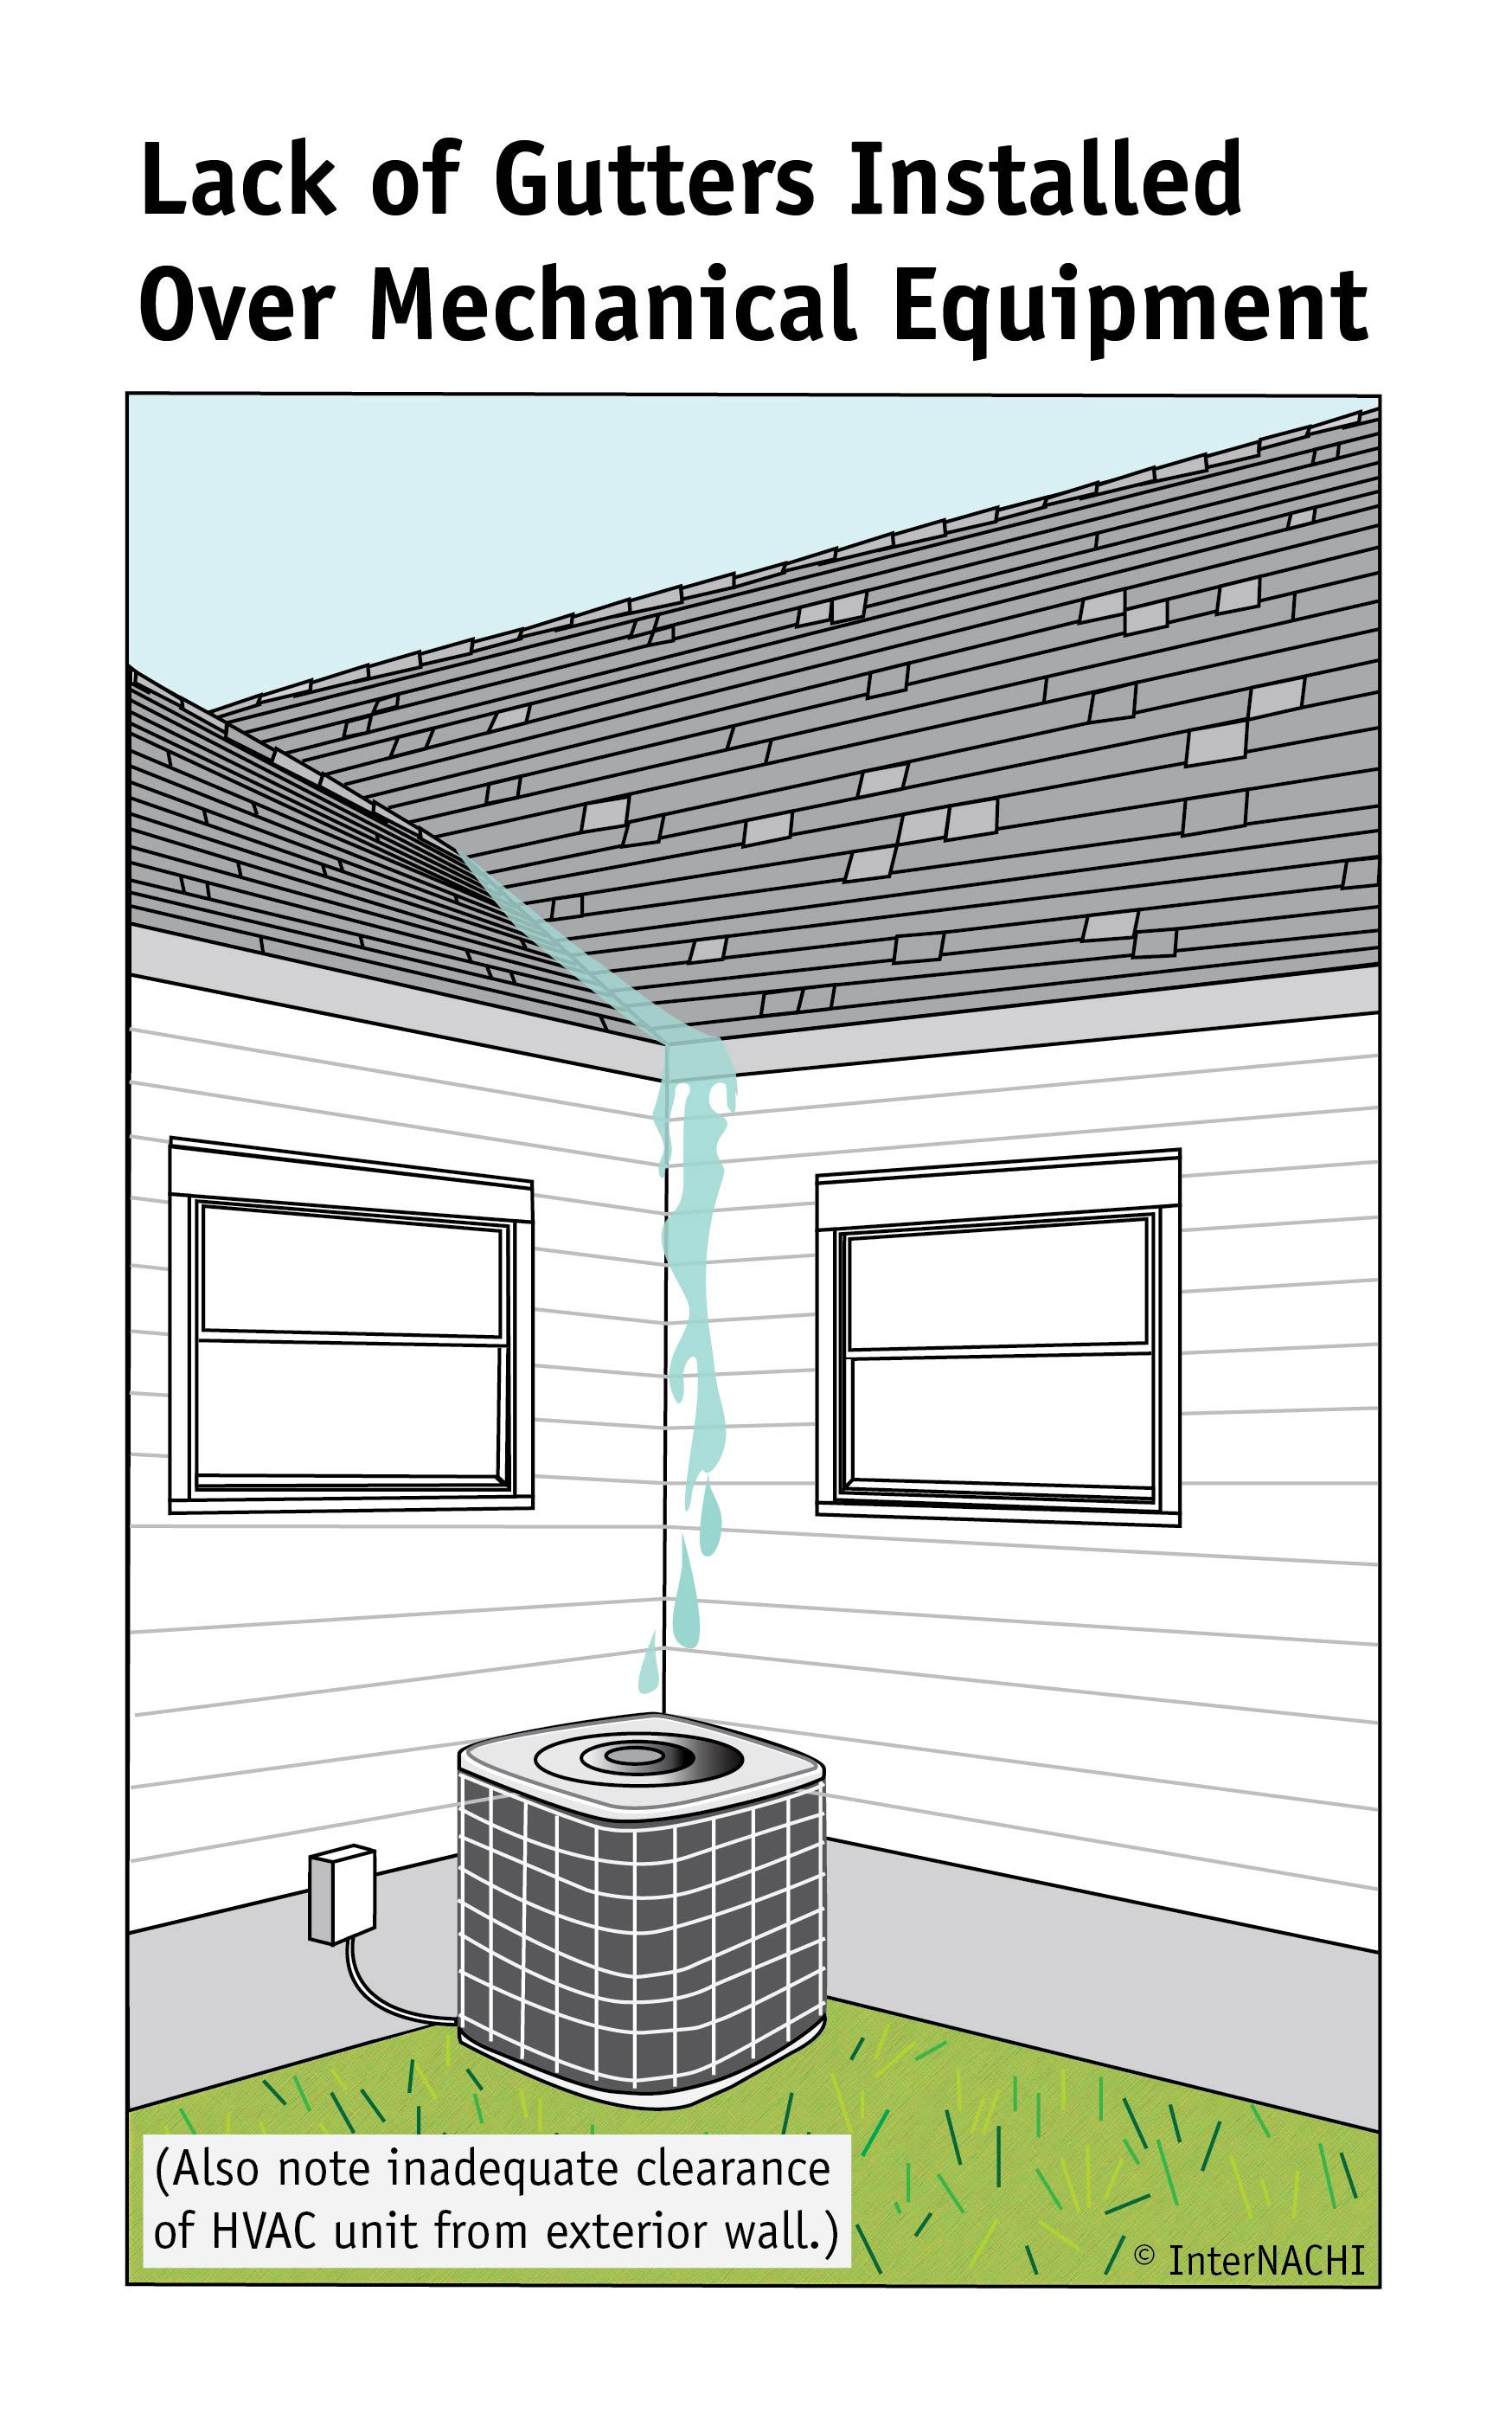 Lack of gutters over mechanical equipment.